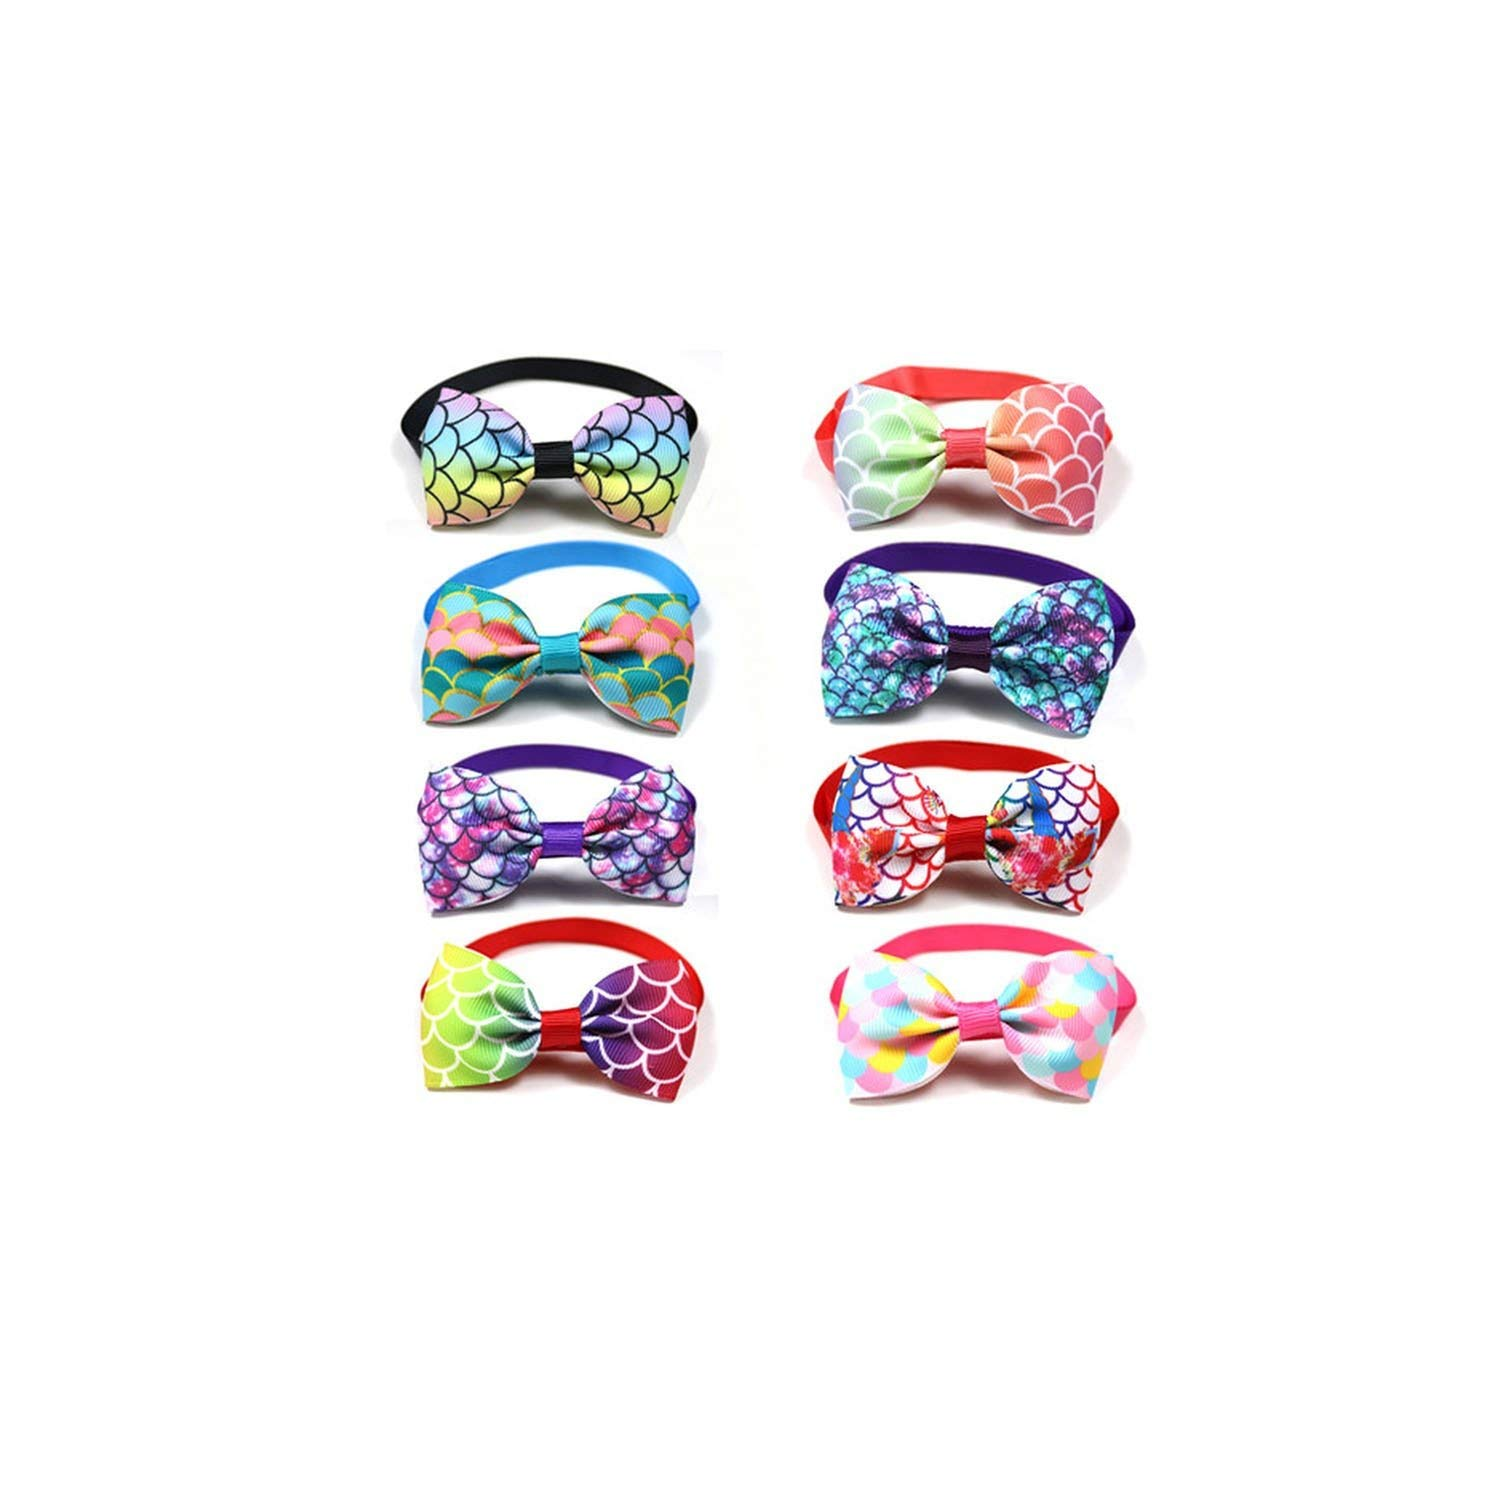 New 100pcs Pet Dog Accessories Pet Dog Cat Bowties Three-Dimensional Fish Scale Style Puppy Cat Ties Pet Cat Grooming Supplies,Mix Colour